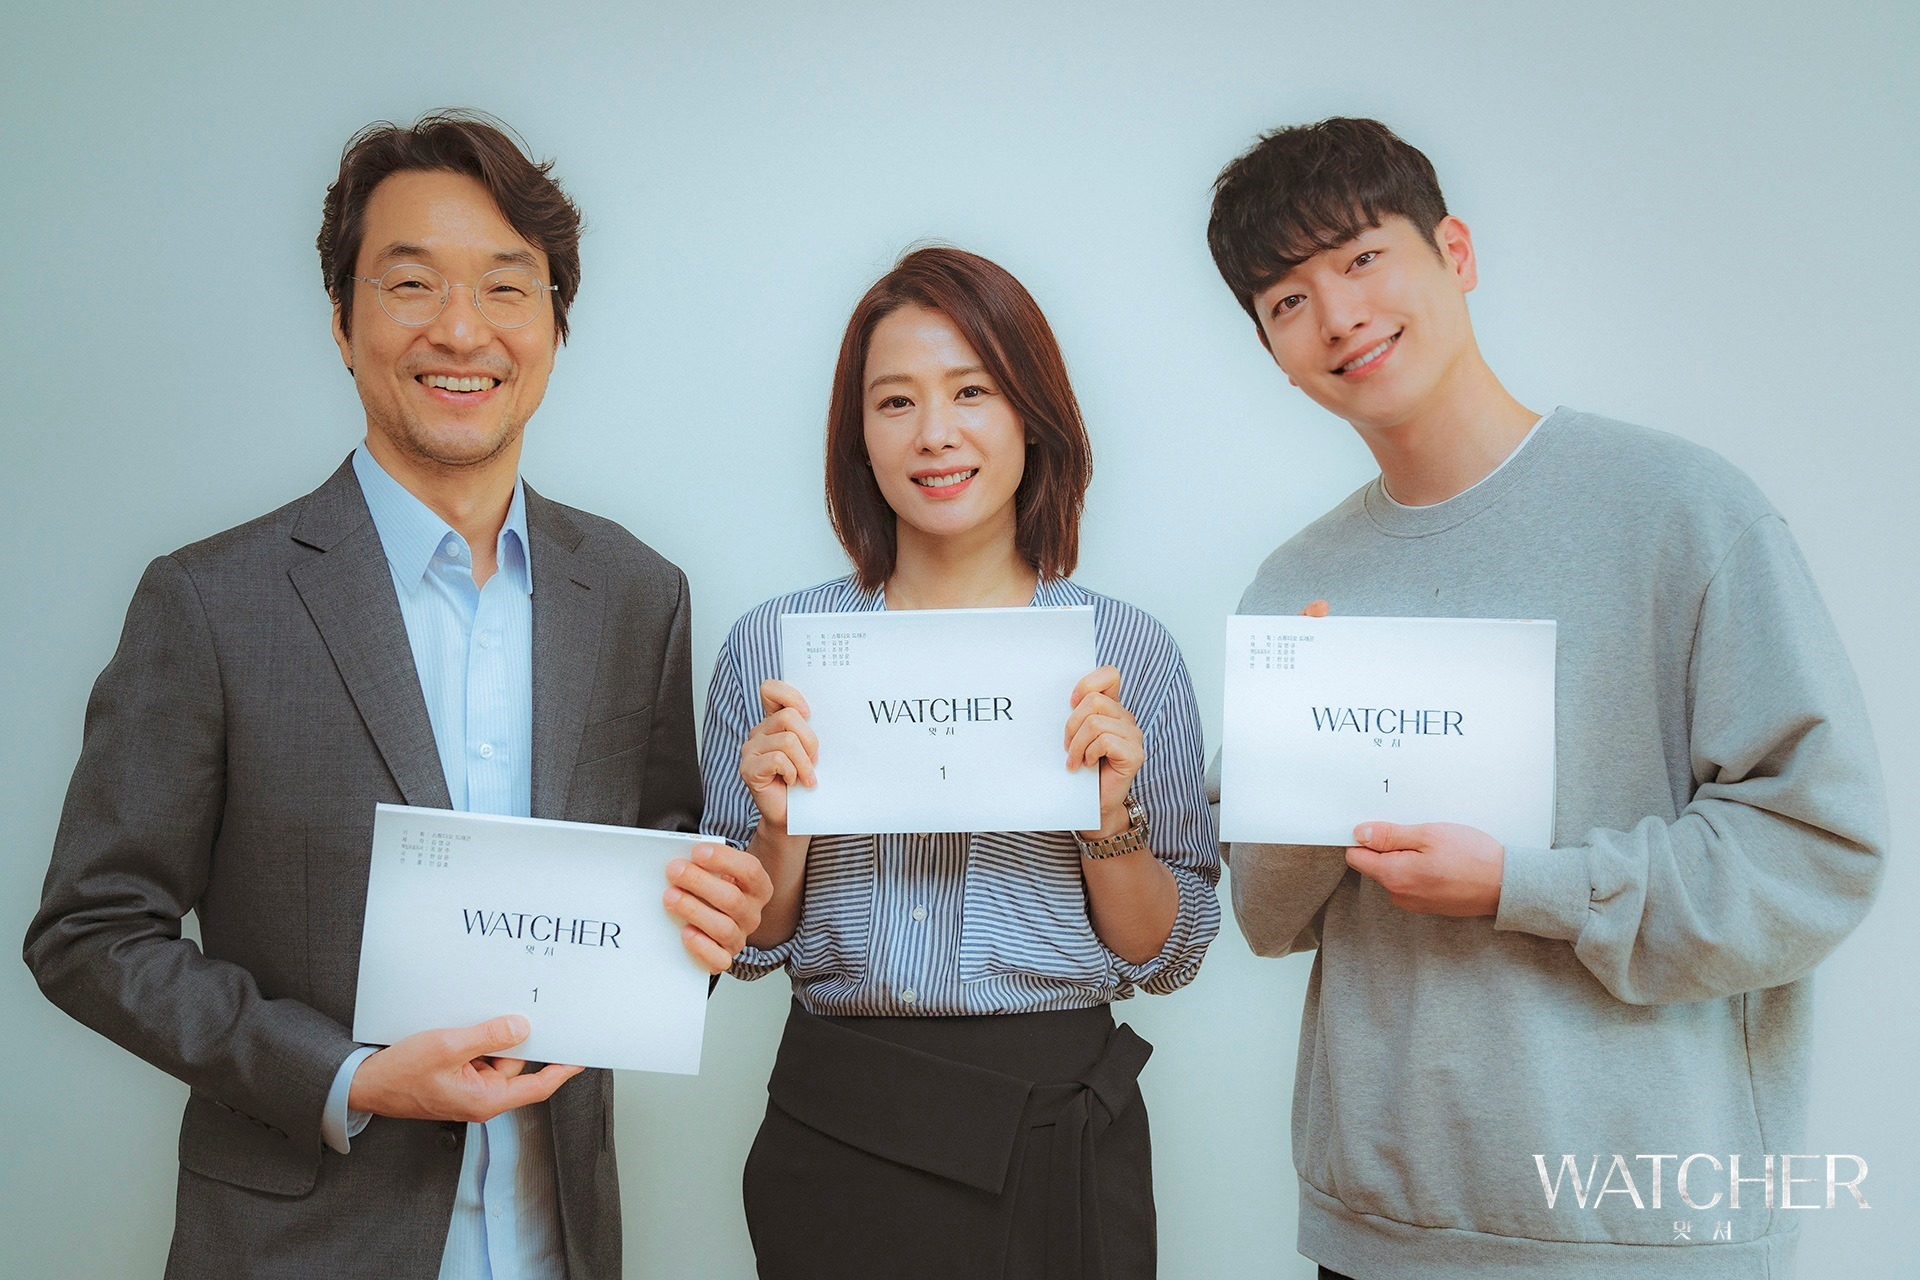 Watcher drama, Watcher ocn, Watcher summary, Watcher cast, watcher seo kangjoon